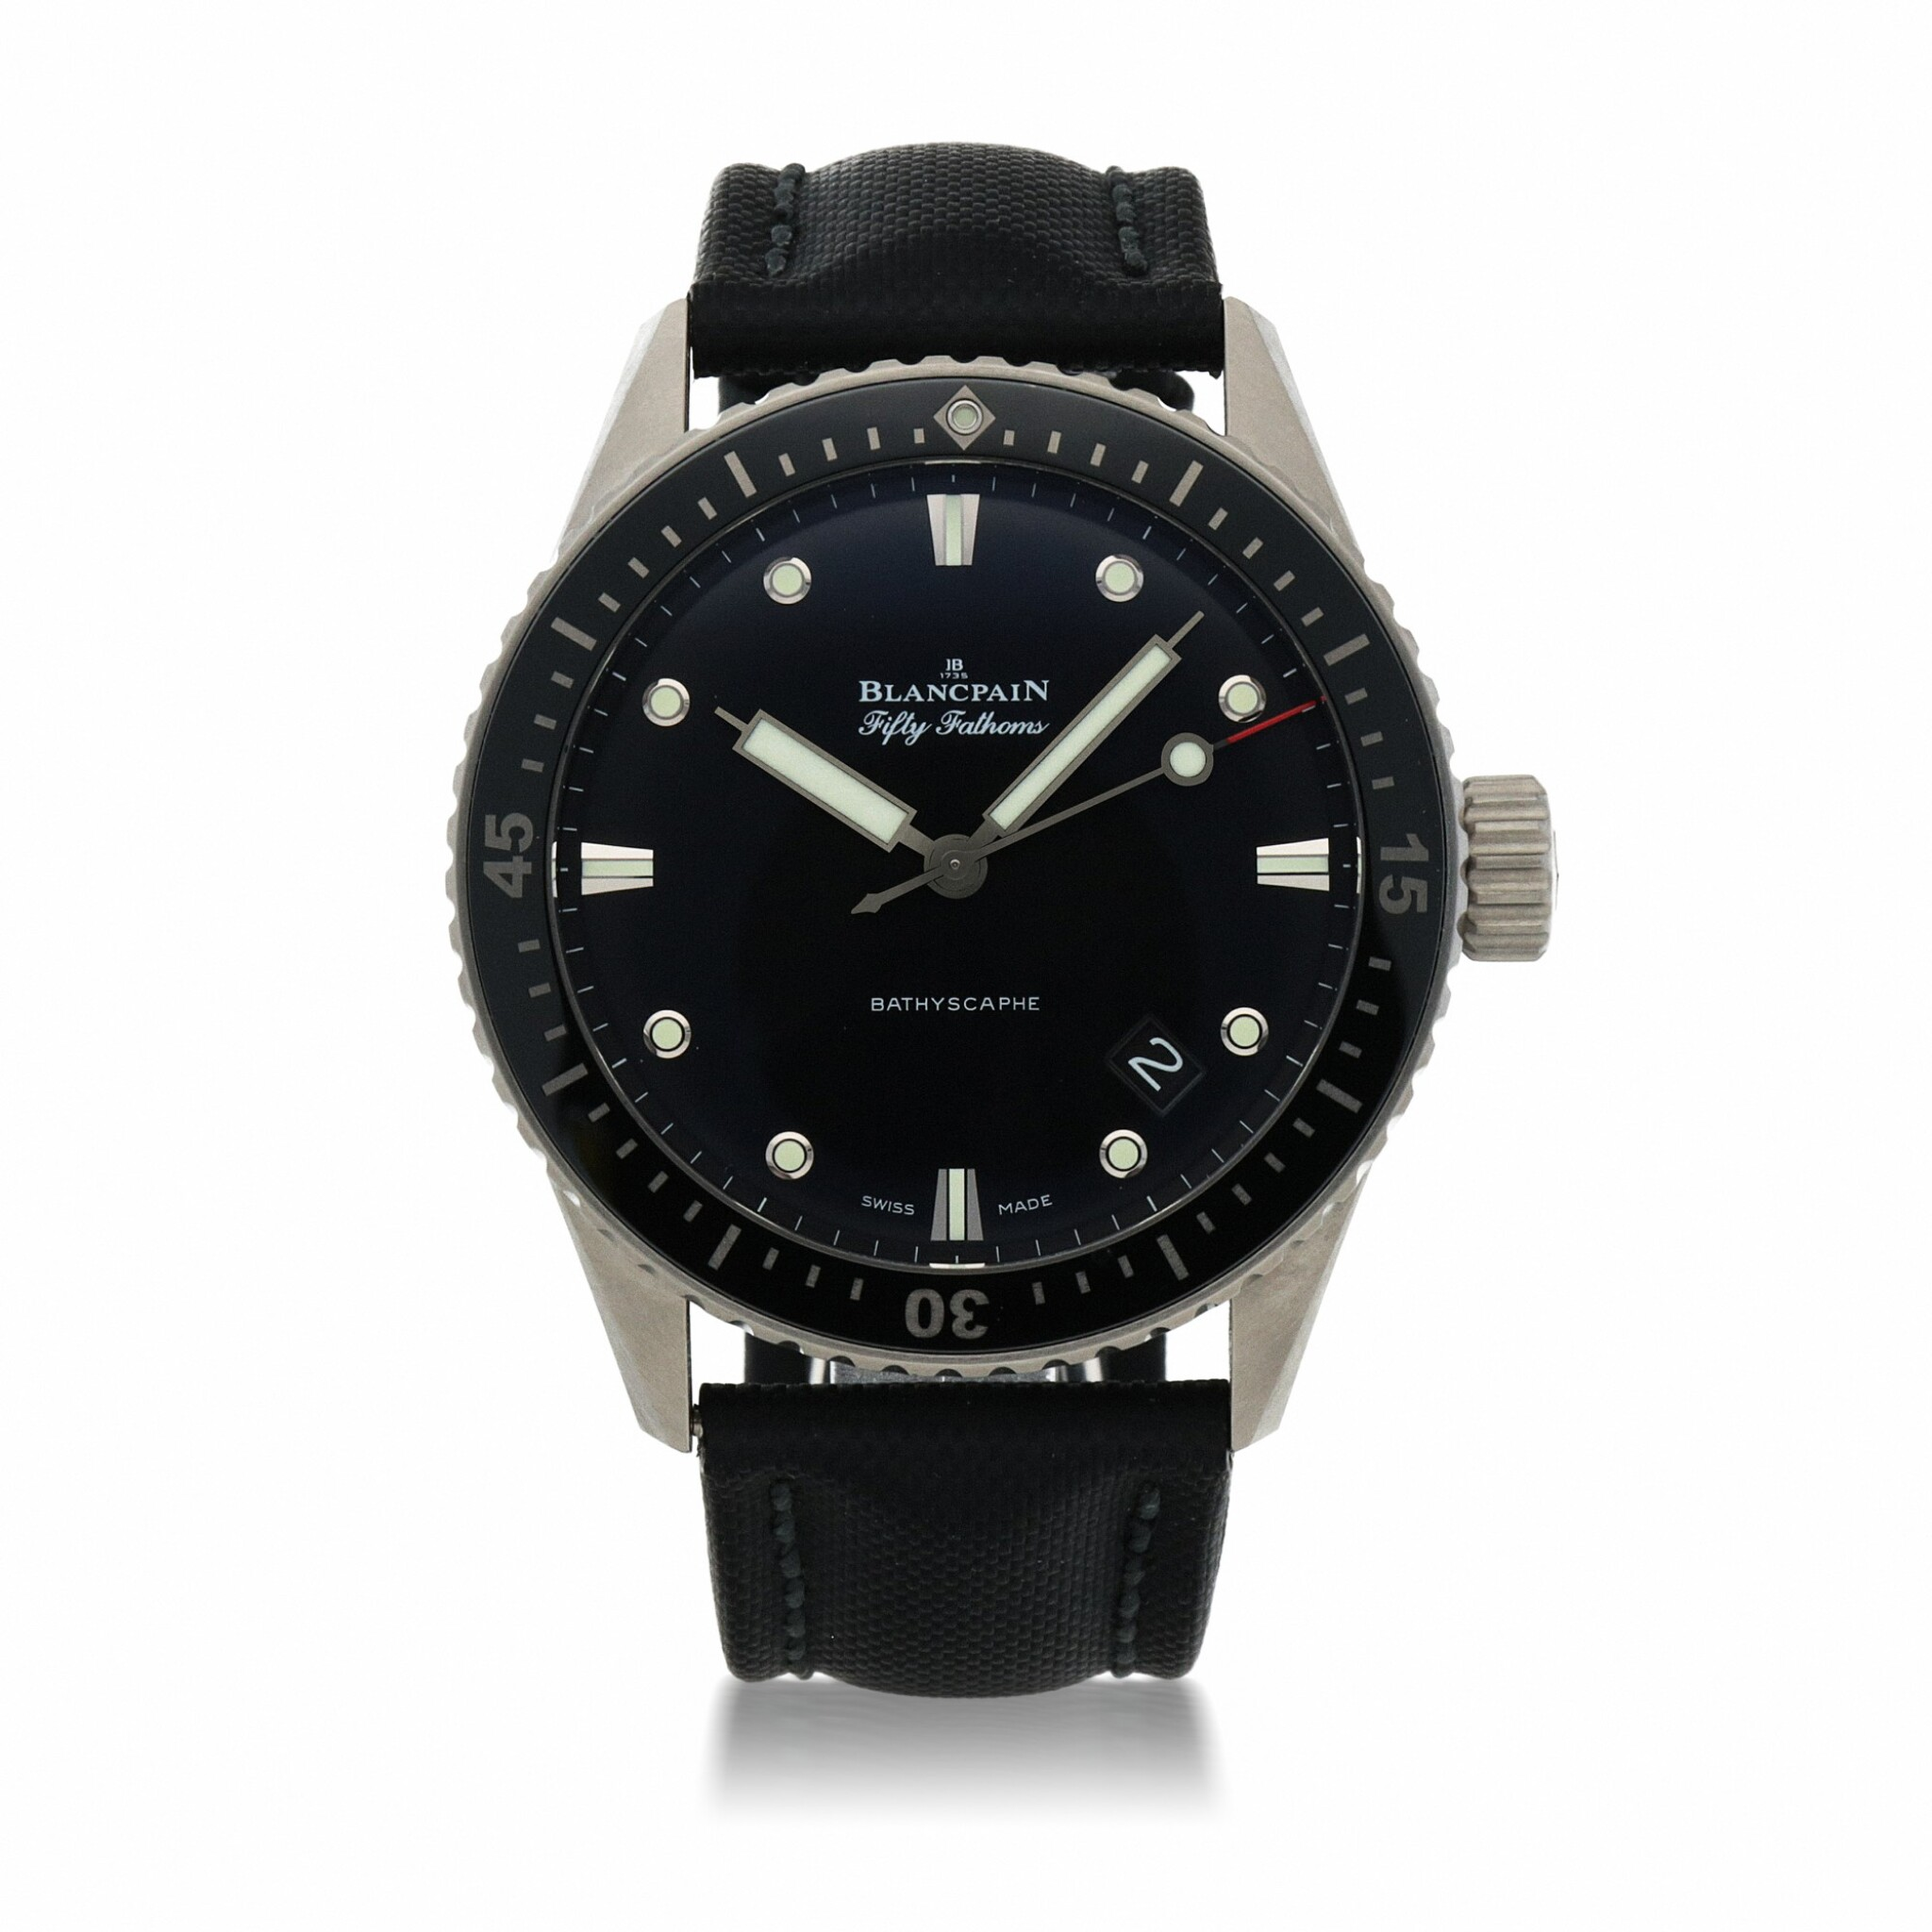 View full screen - View 1 of Lot 923. FIFTY FATHOMS BATHYSCAPHE, REF 5000-1230 TITANIUM WRISTWATCH WITH DATE CIRCA 2017        .